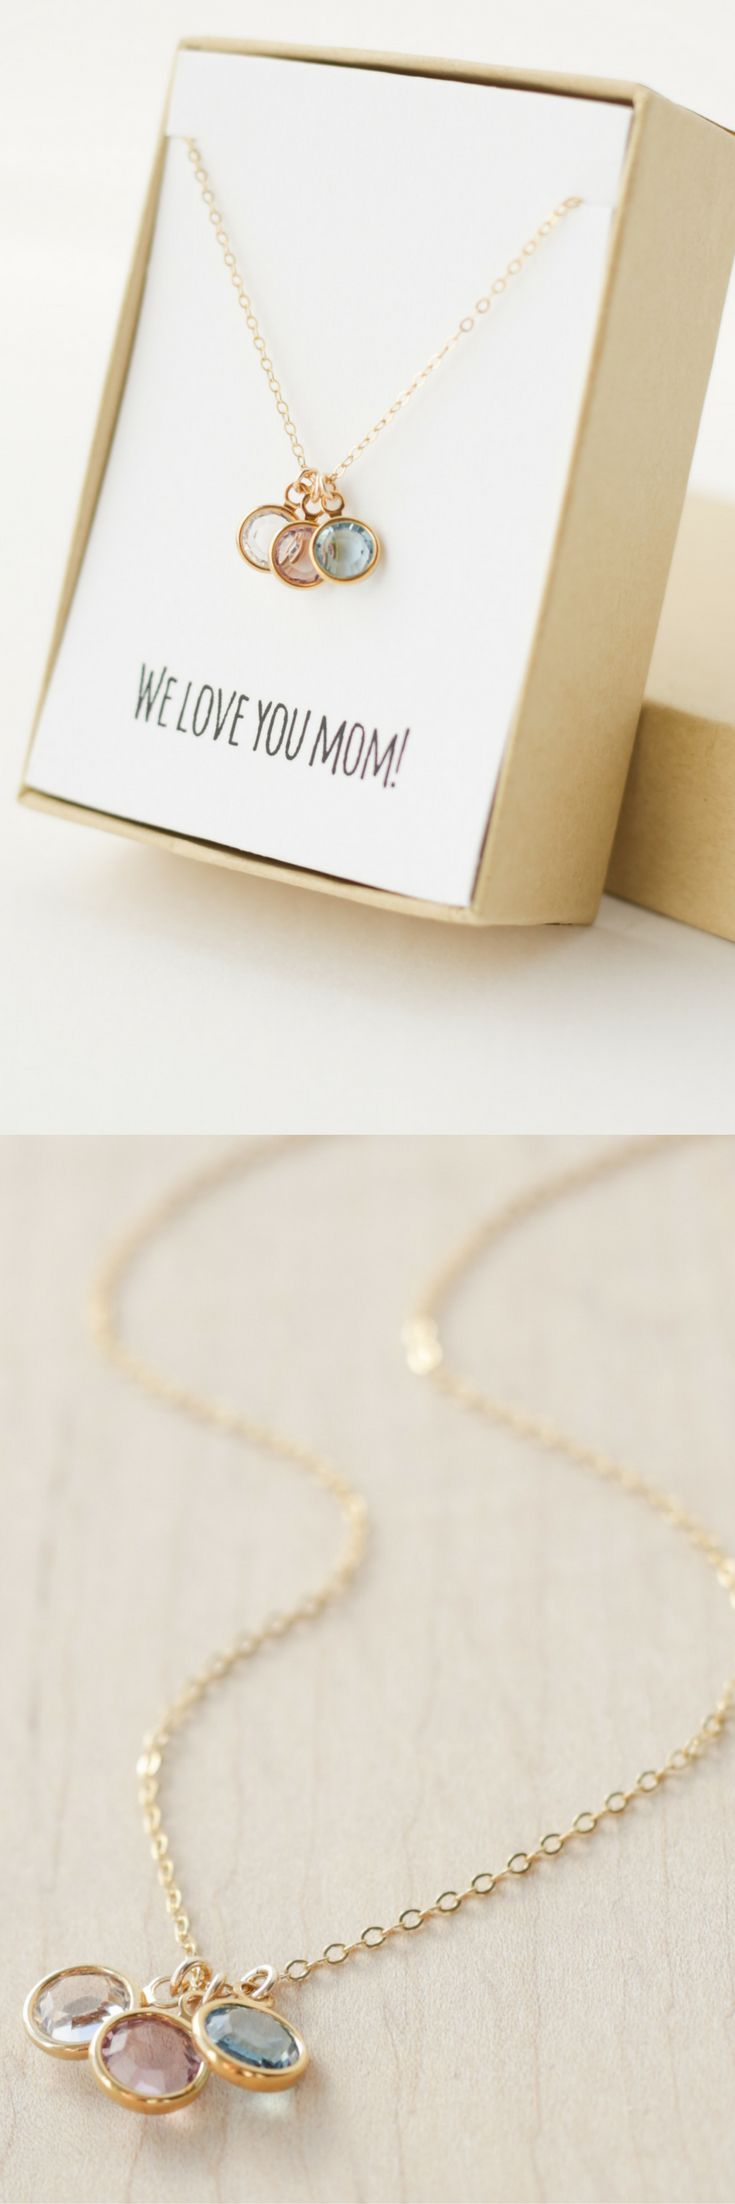 25 diy necklace for mom